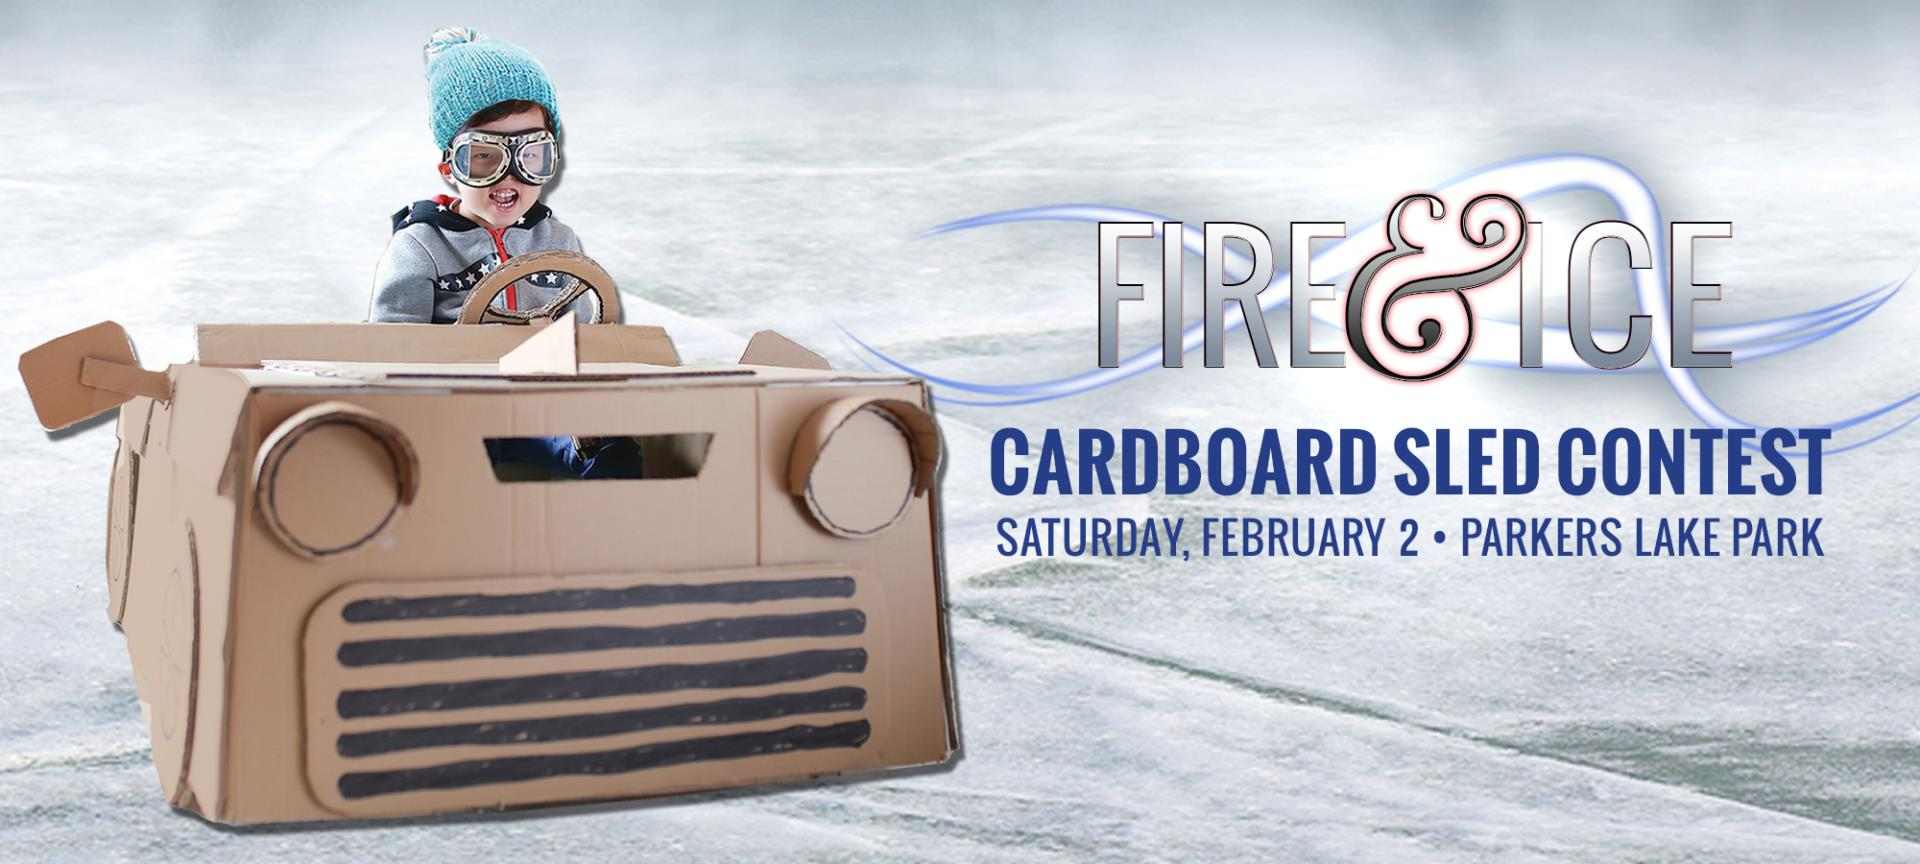 Plymouth Fire & Ice Cardboard Sled Contest graphic